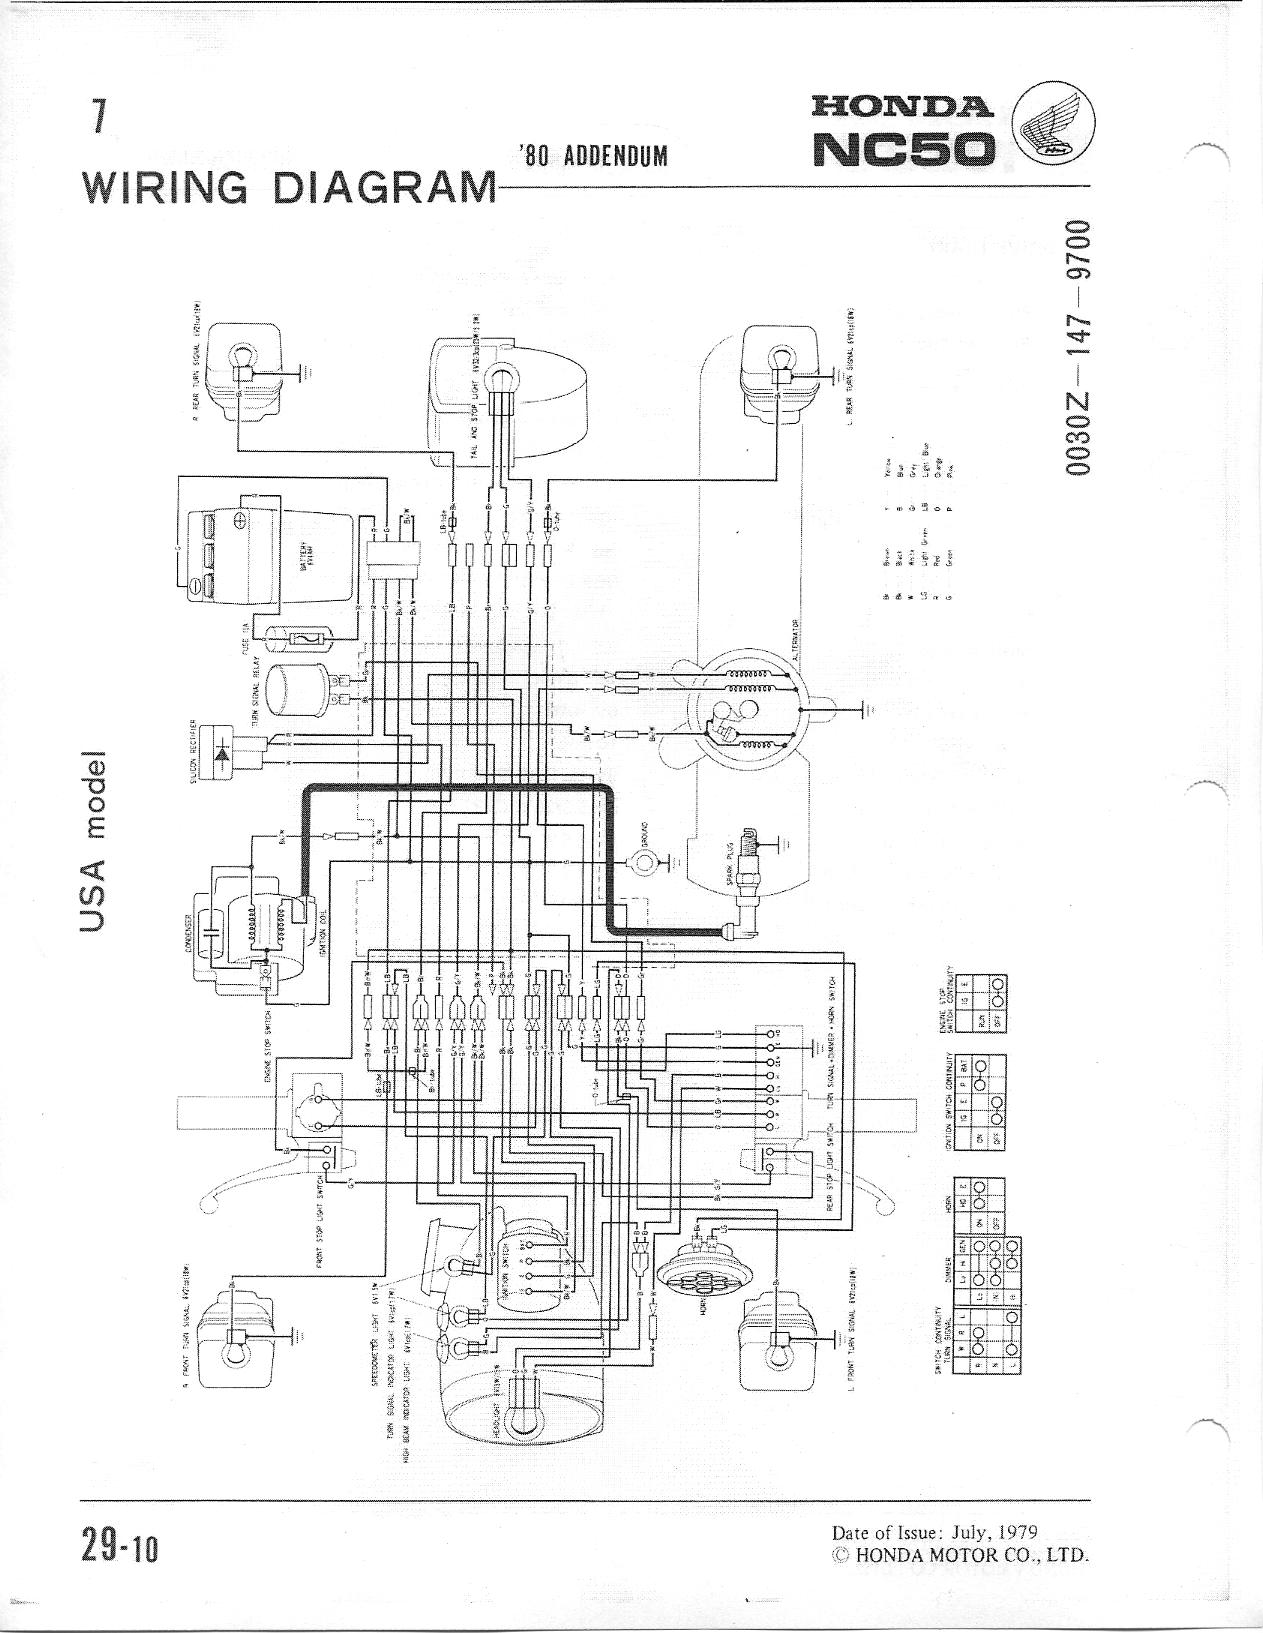 1980 Honda Express Nc50 Wiring Diagram Diagrams Xr50r On Pa50 Rh 107 191 48 154